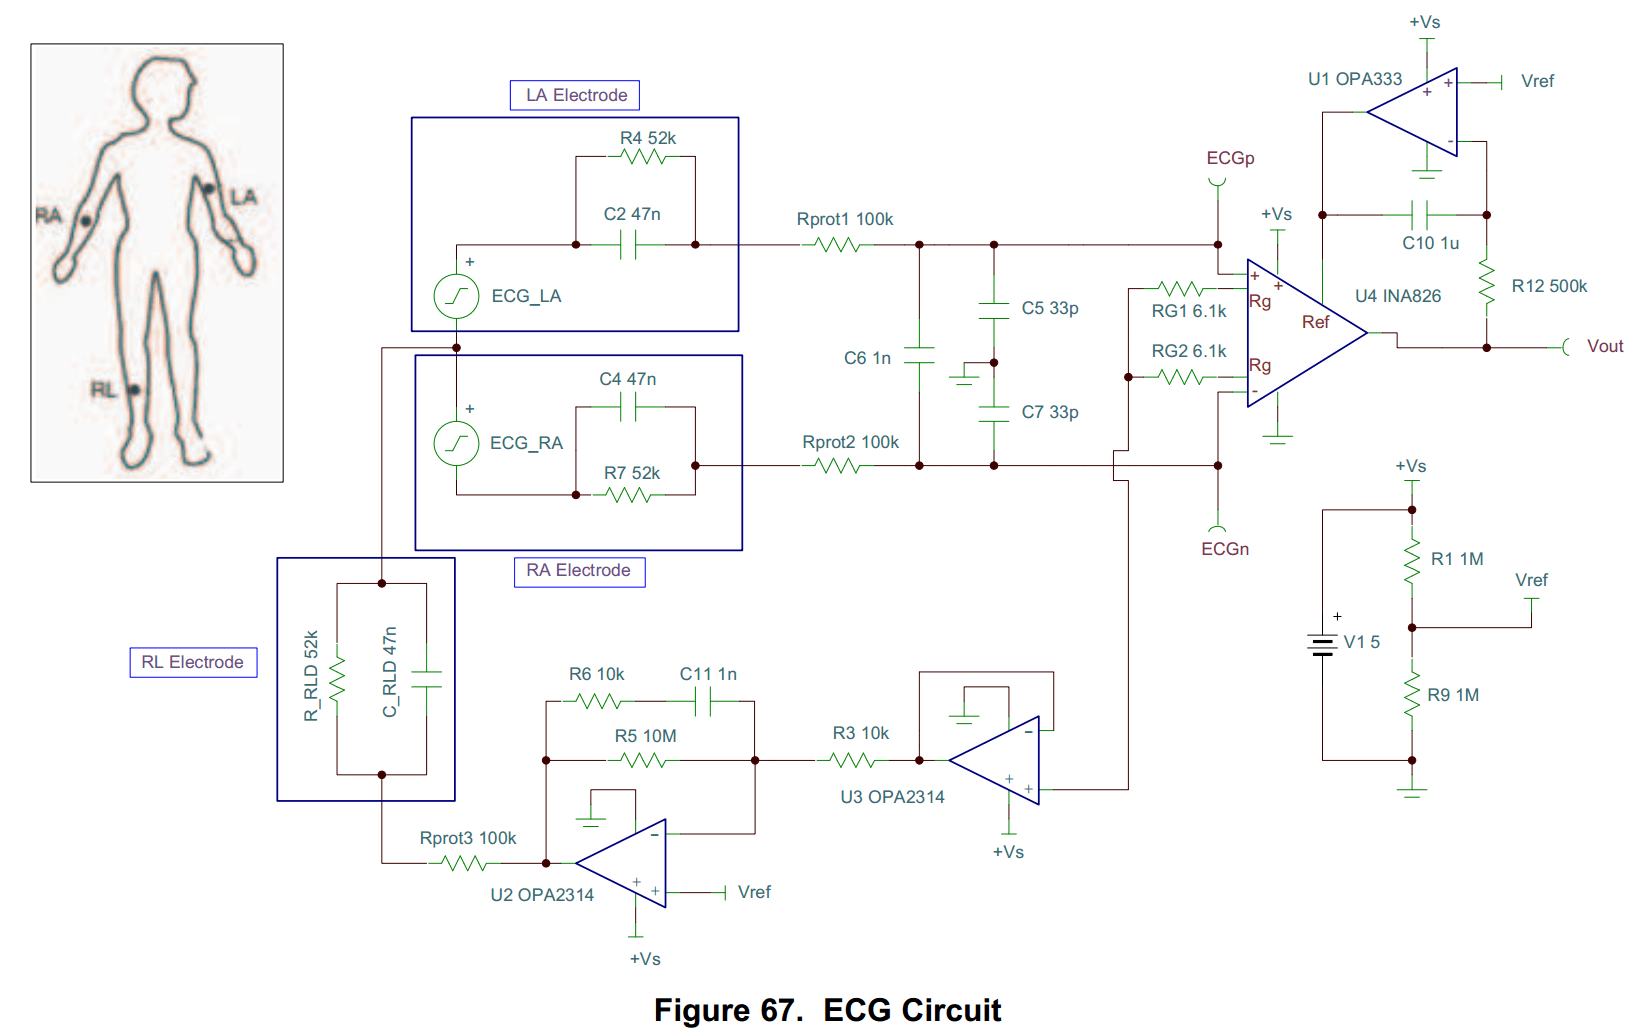 Ecg Circuit Analysis And Design Engineers Labs Auto Electrical Simulator 12 Lead Diagram